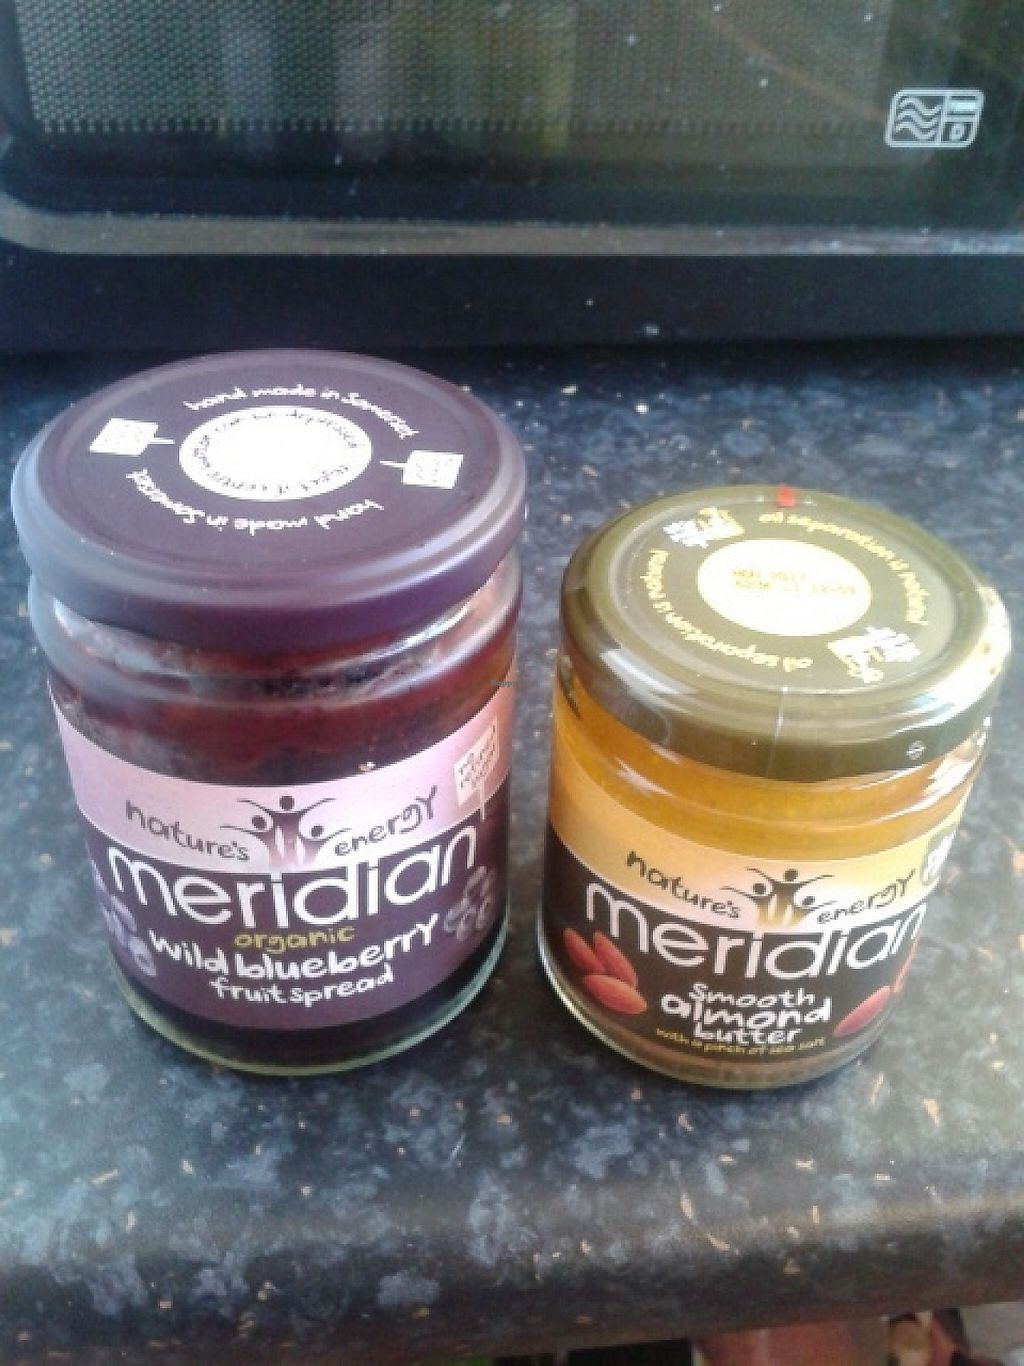 """Photo of Holland and Barrett  by <a href=""""/members/profile/deadpledge"""">deadpledge</a> <br/>Vegan blackberry jam and almond butter <br/> June 1, 2017  - <a href='/contact/abuse/image/39483/264726'>Report</a>"""